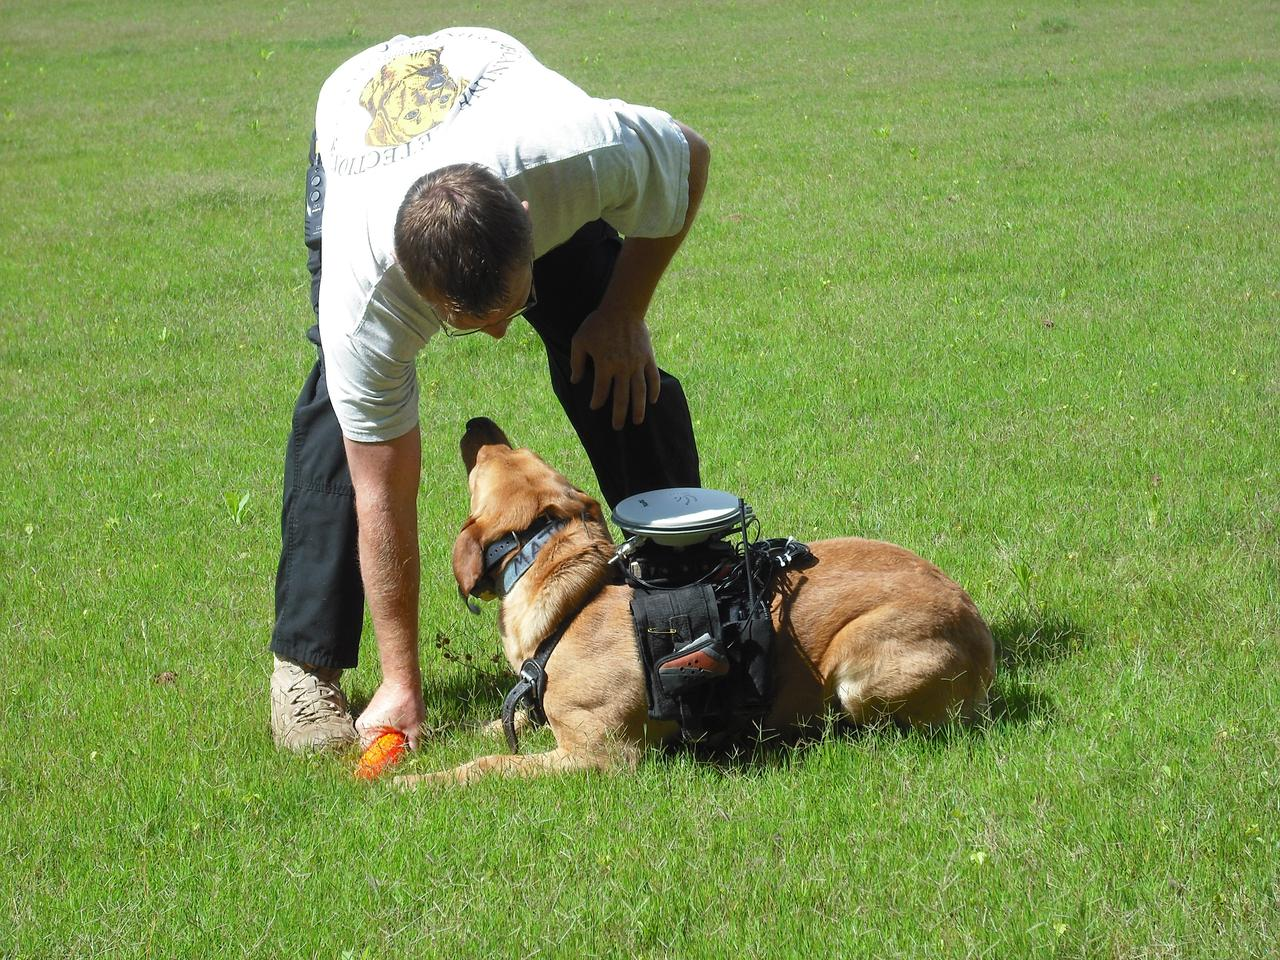 In tests conducted in structured and unstructured environments, dogs using the system reportedly showed an overall obedience accuracy rate of nearly 87 percent